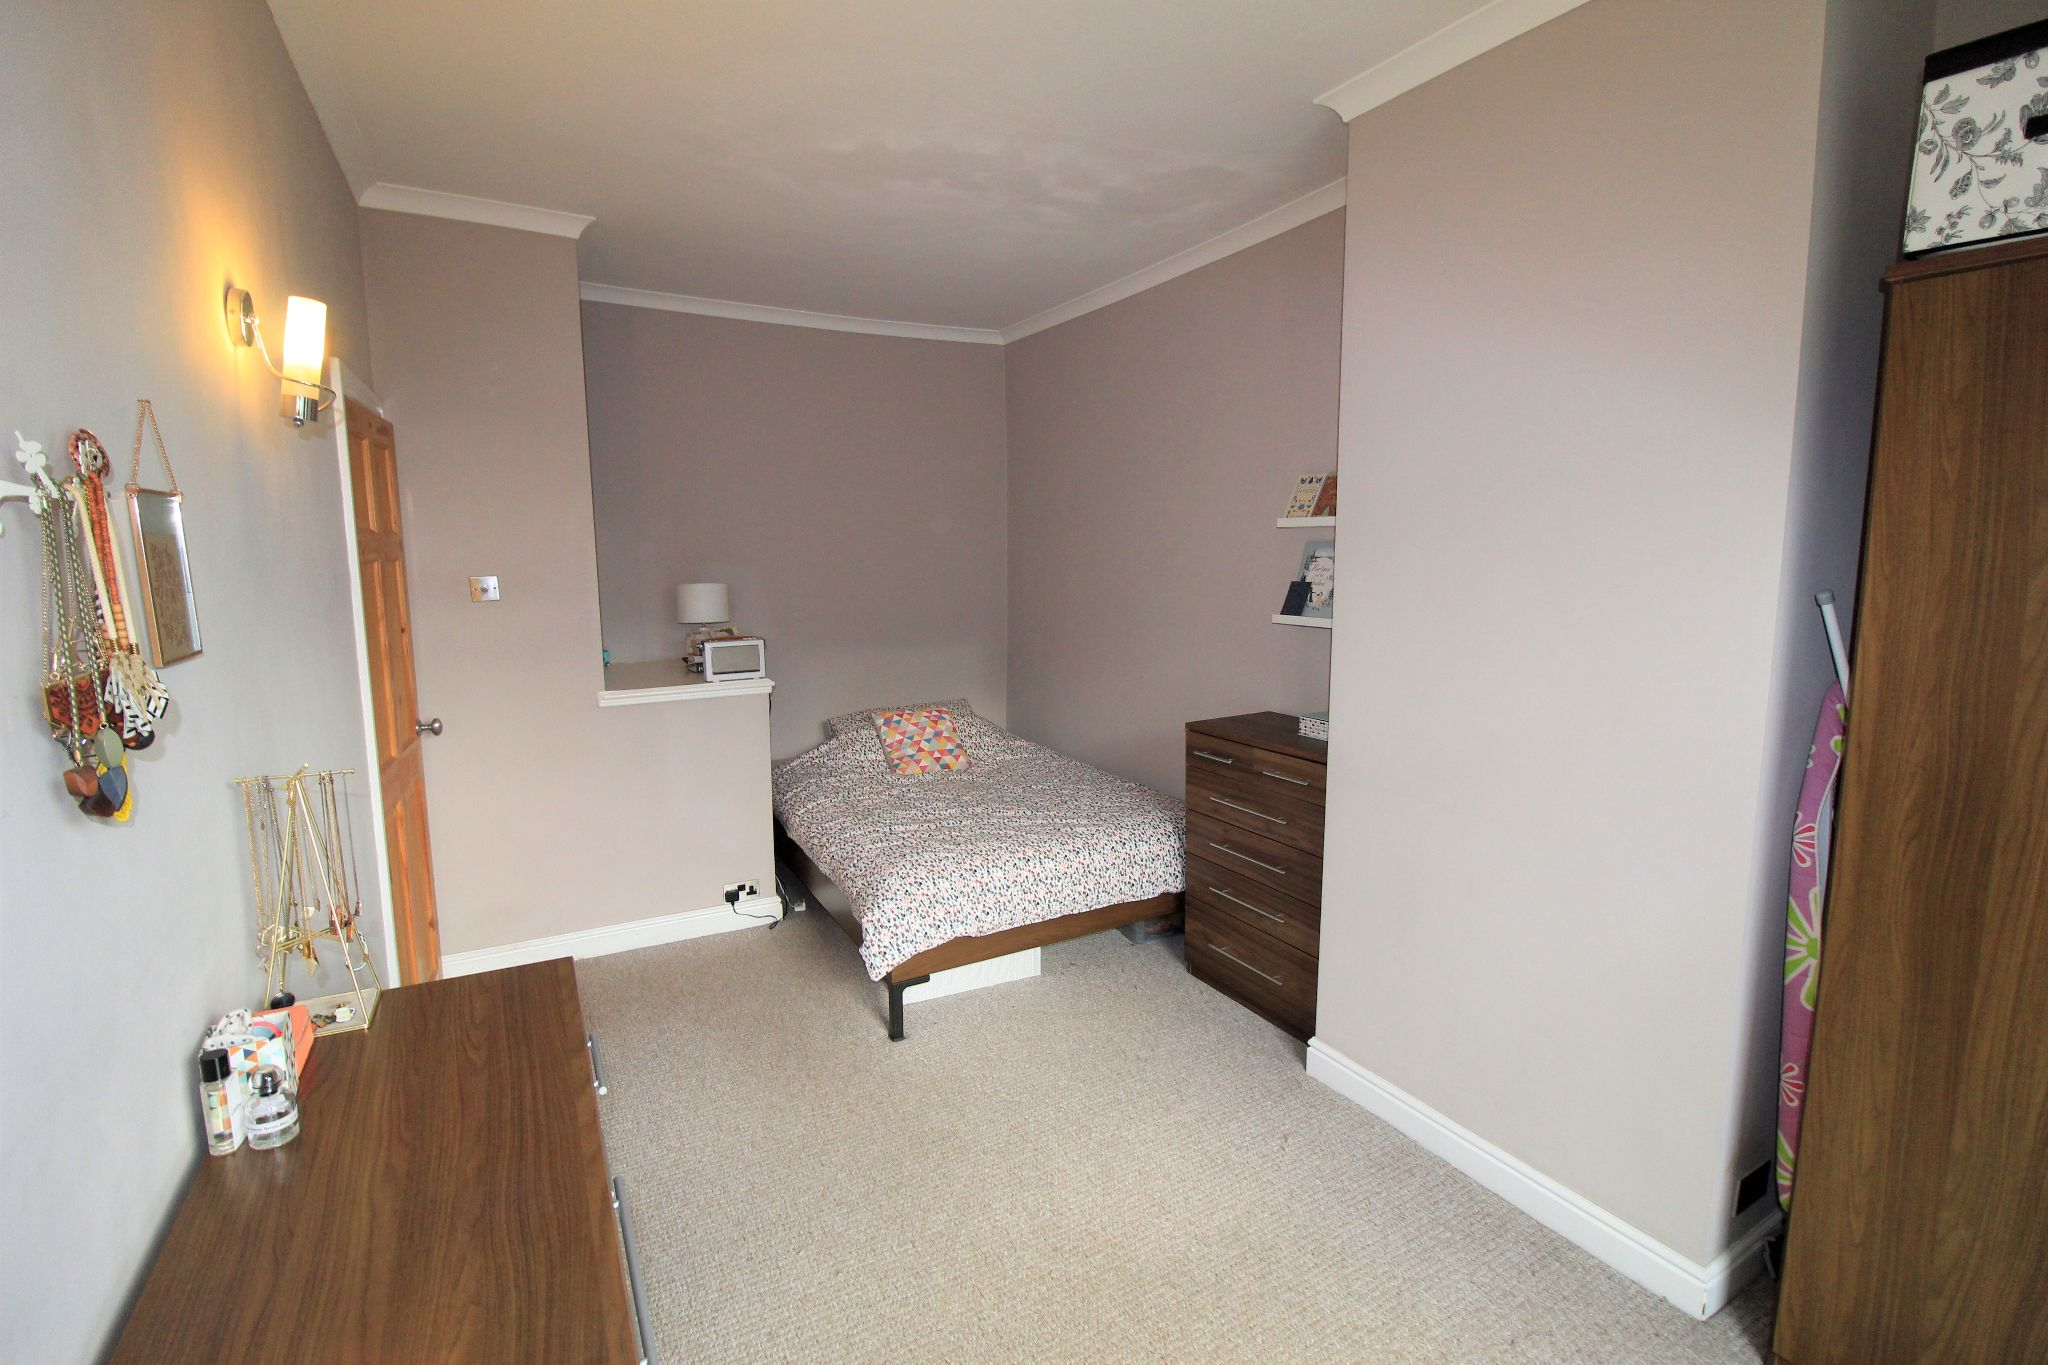 2 bedroom mid terraced house Sale Agreed in Brighouse - Bedroom 1